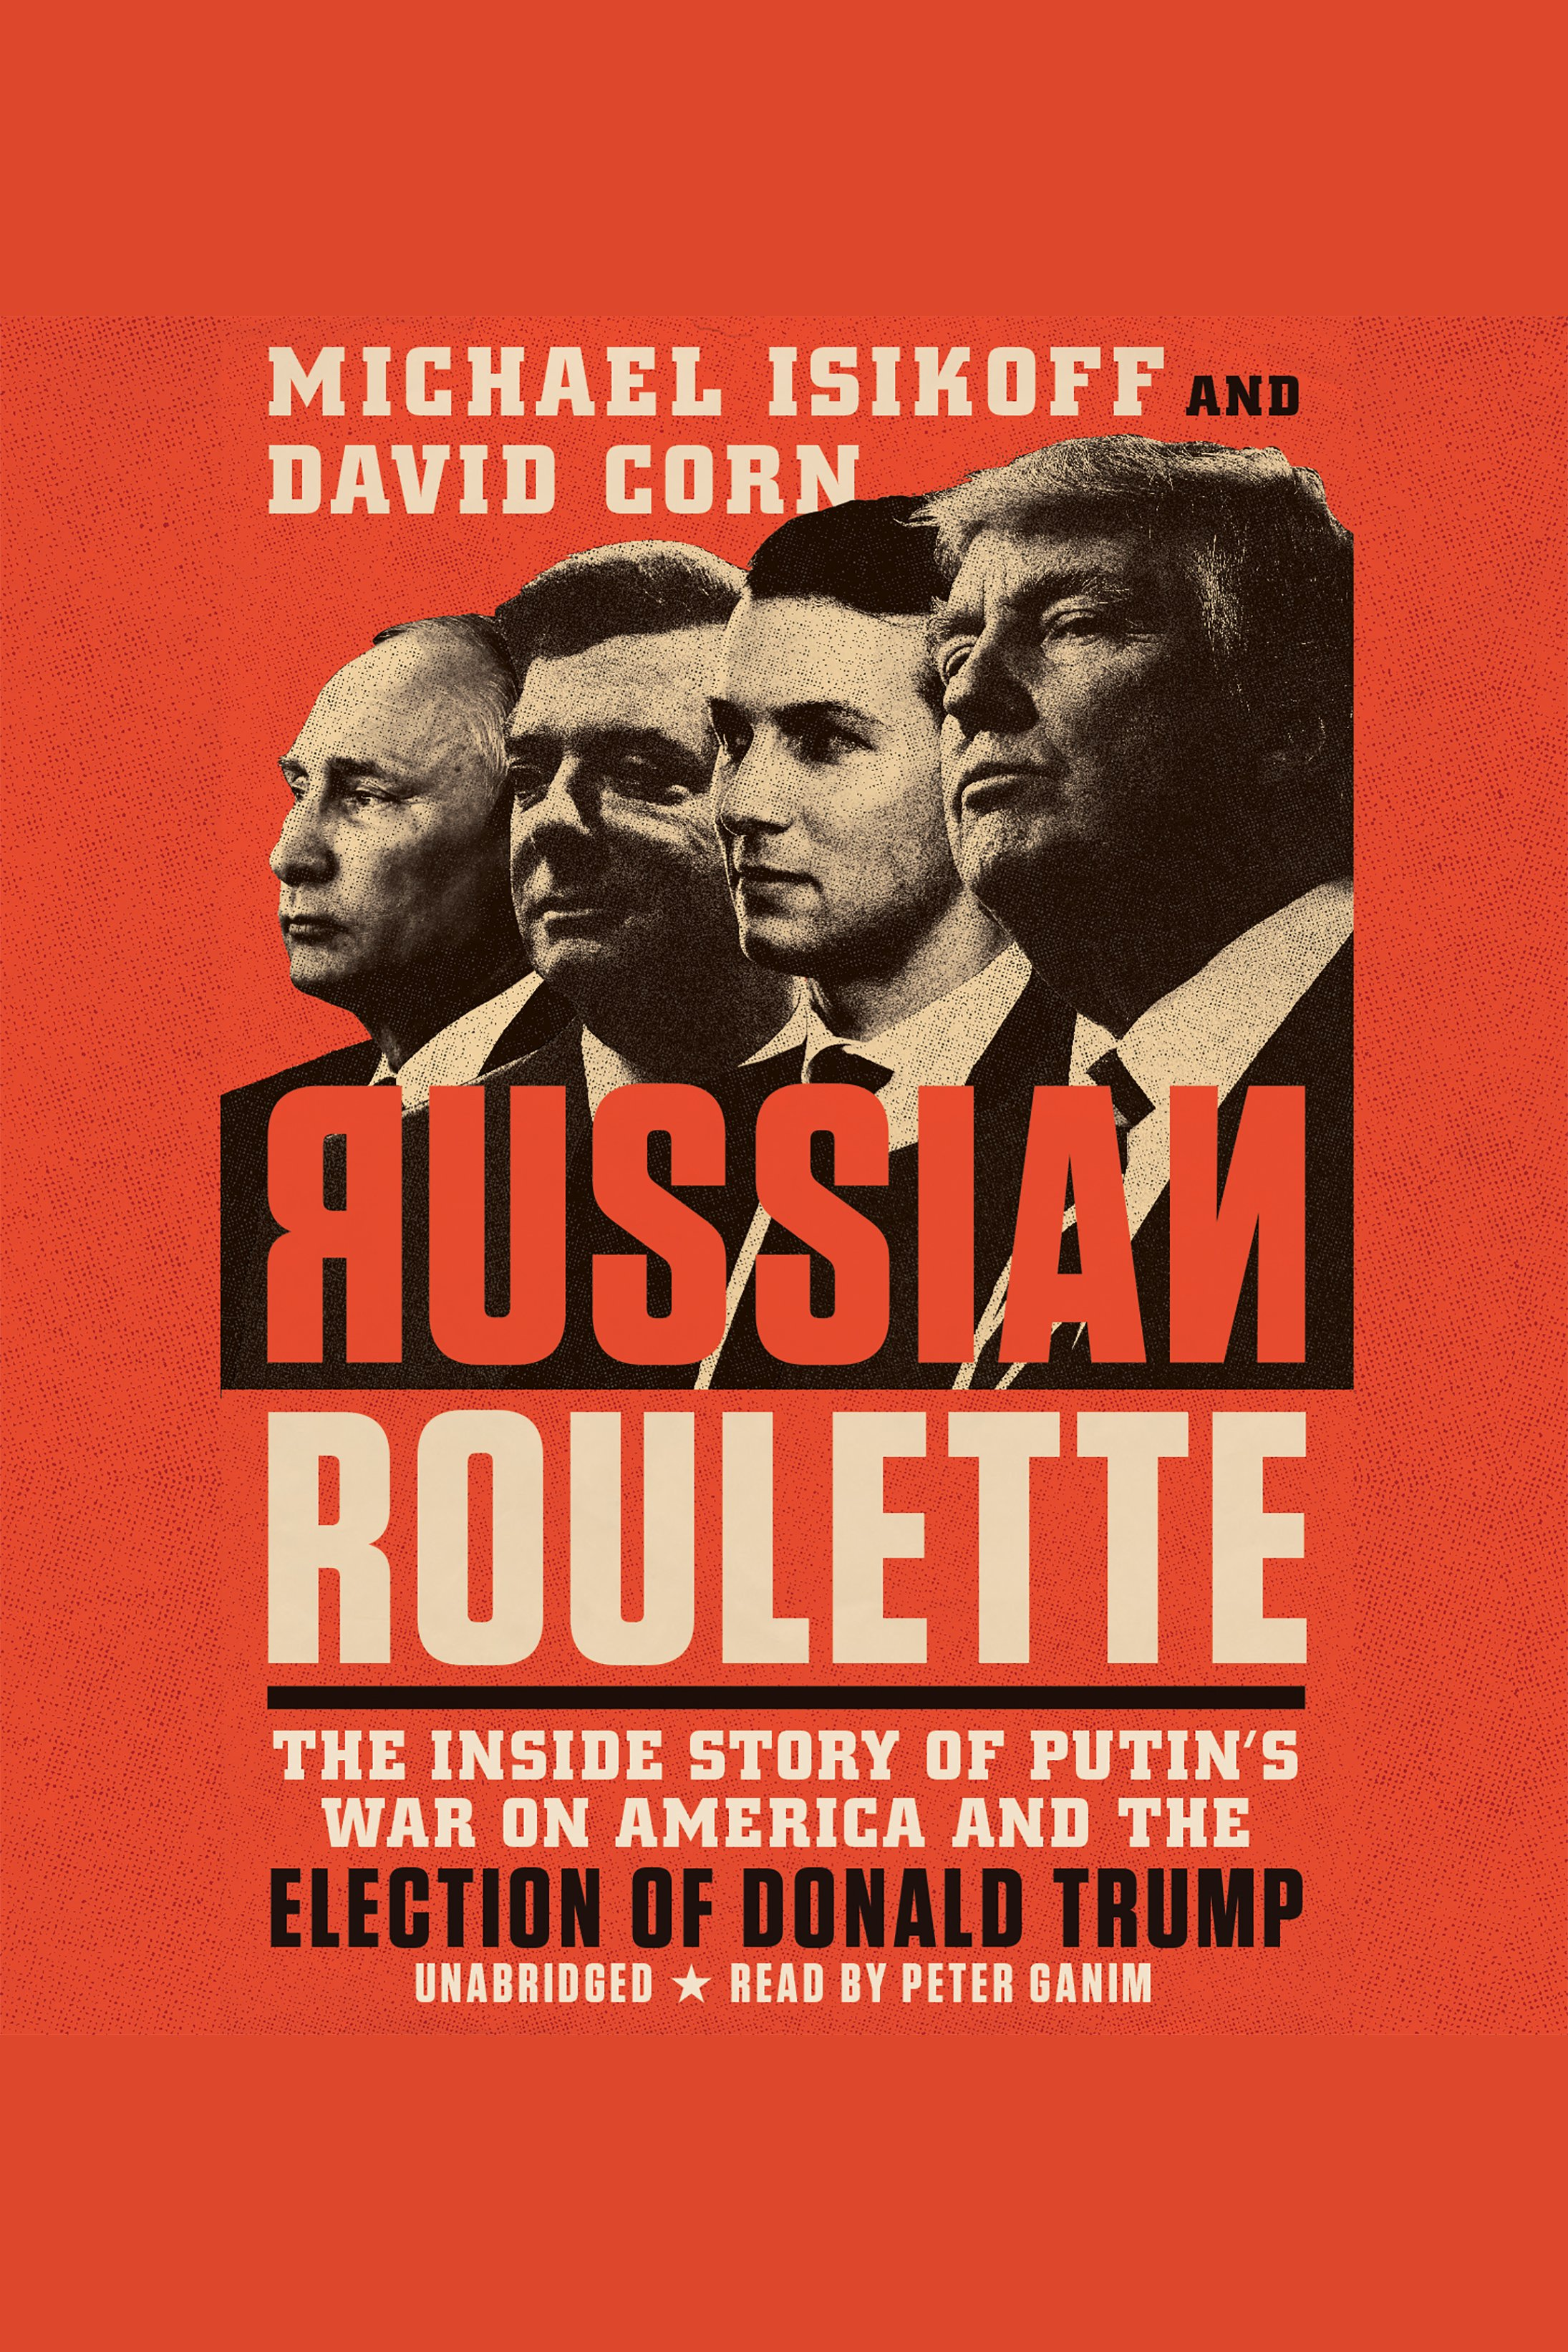 Russian Roulette [EAUDIOBOOK] The Inside Story of Putin's War on America and the Election of Donald Trump